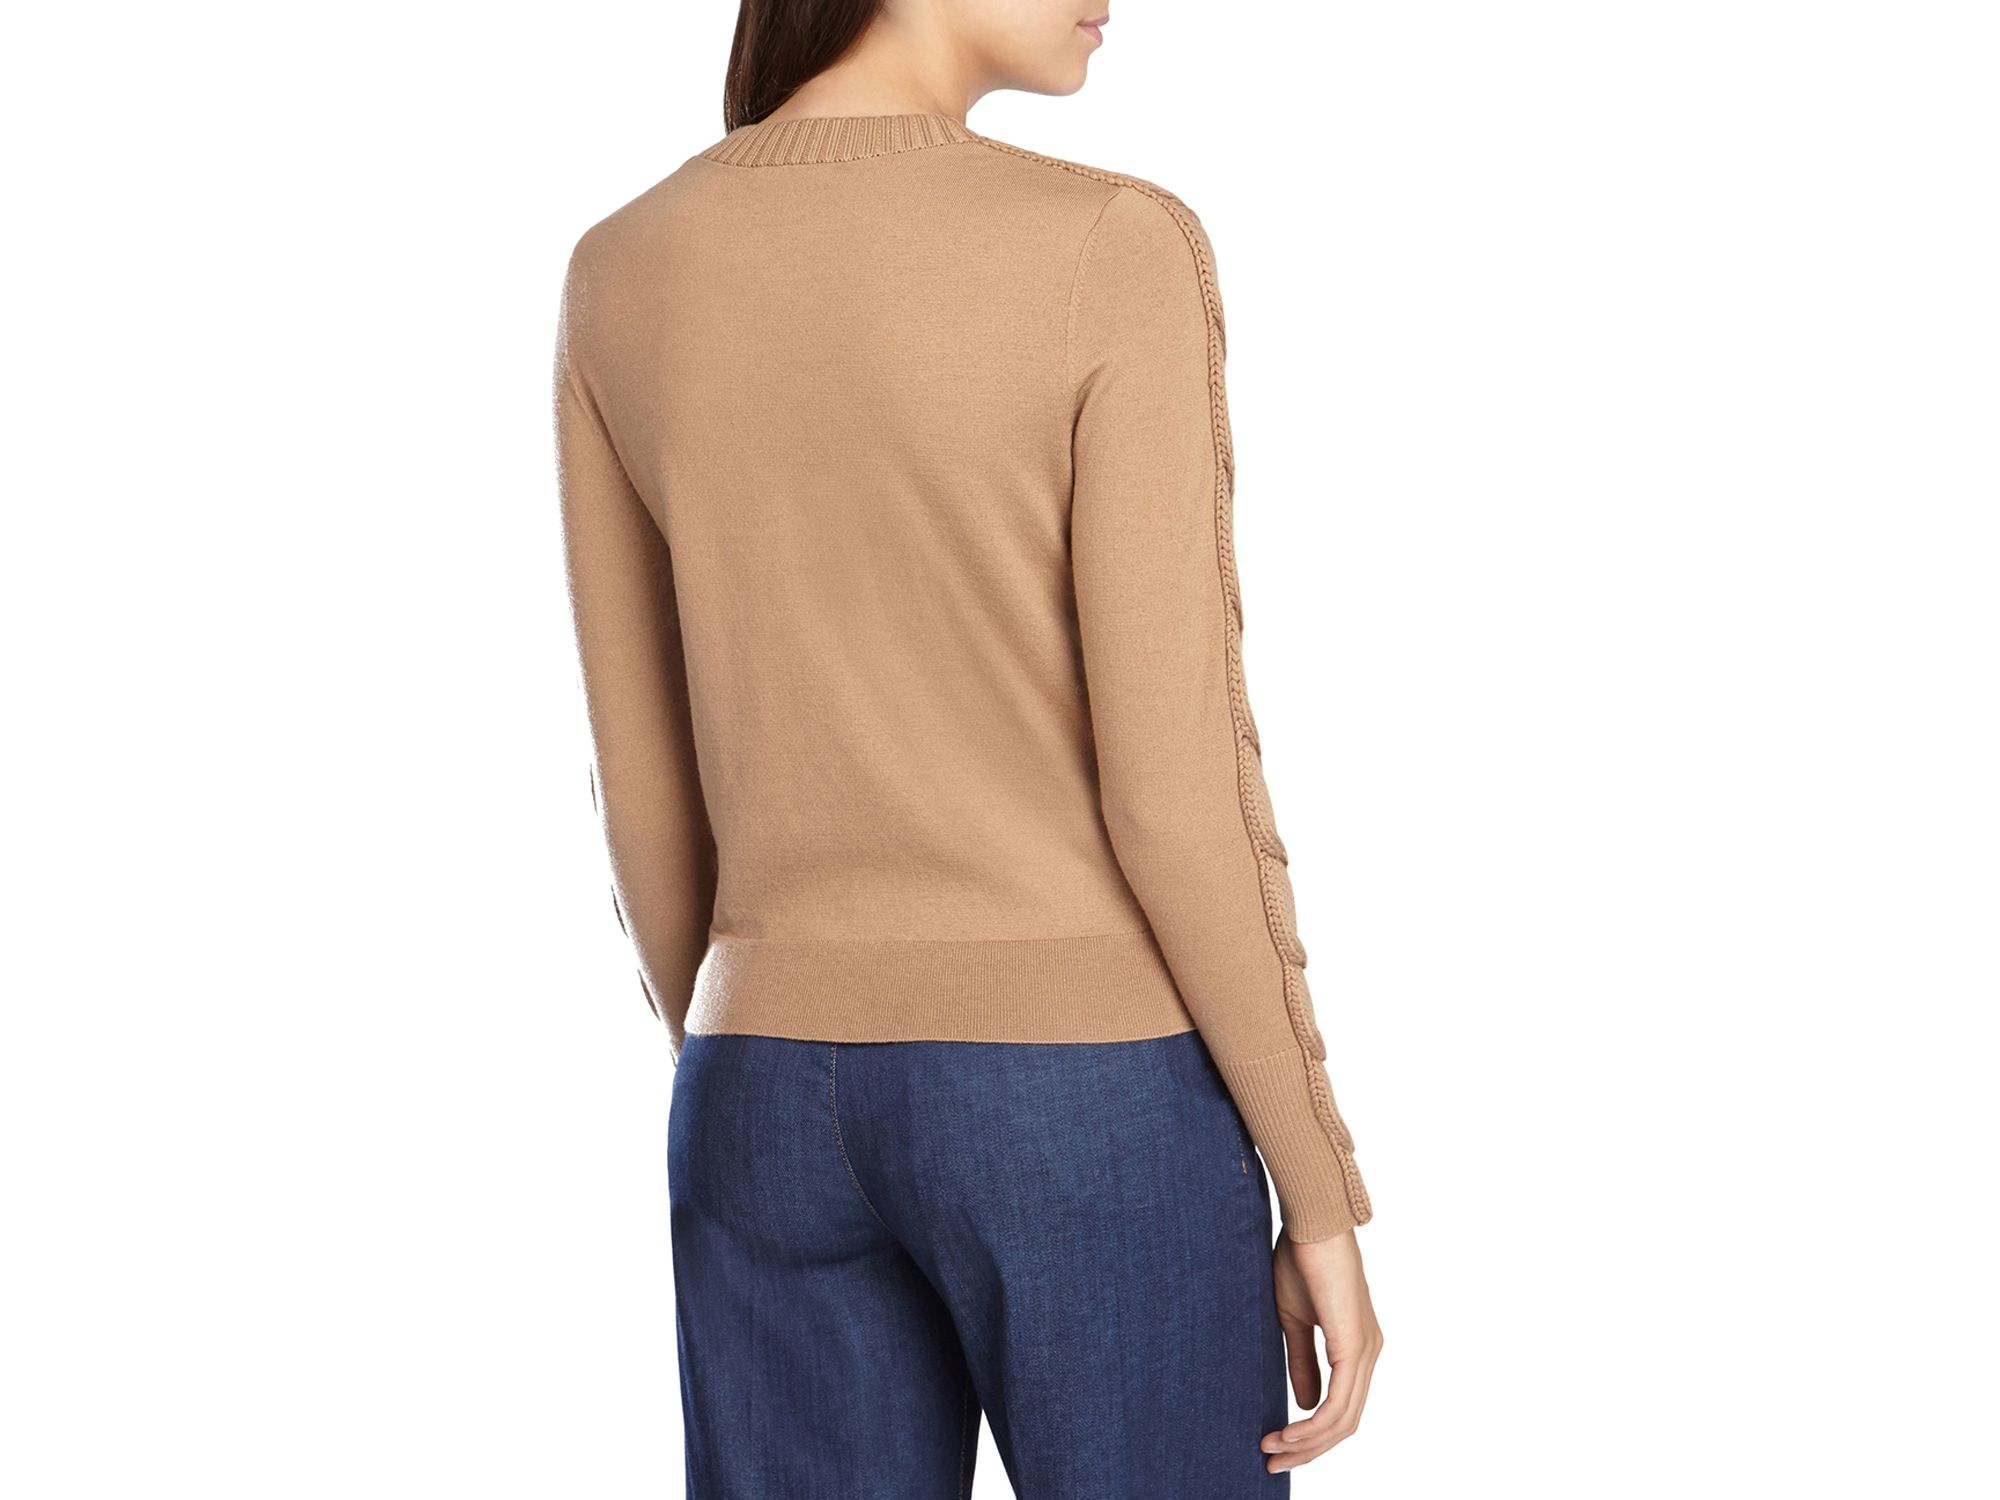 Karen millen Fine Gauge Cable Knit Sweater in Natural | Lyst